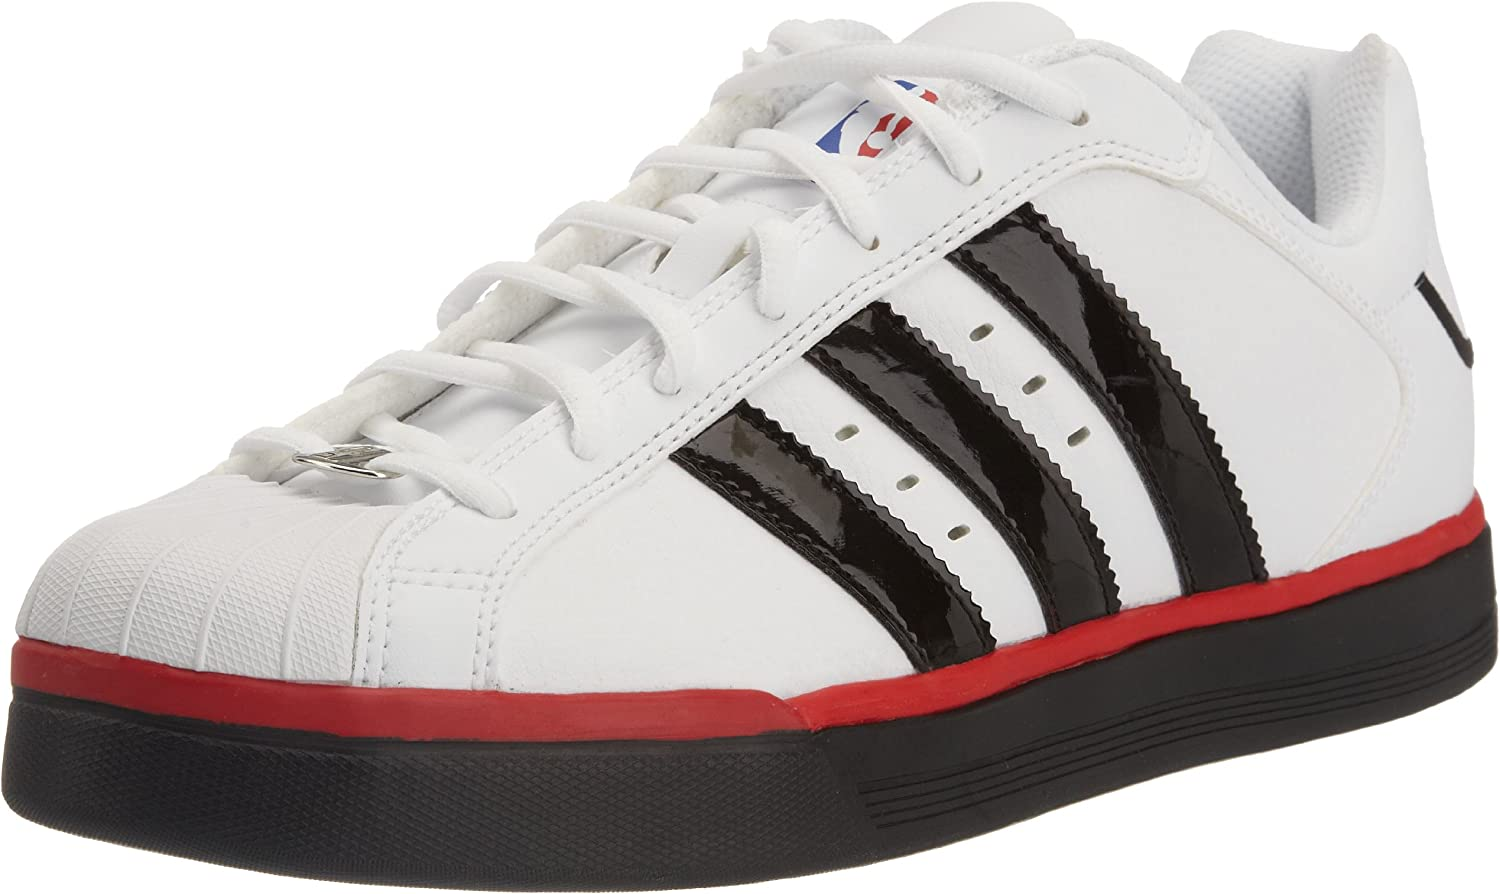 adidas superstar colors names